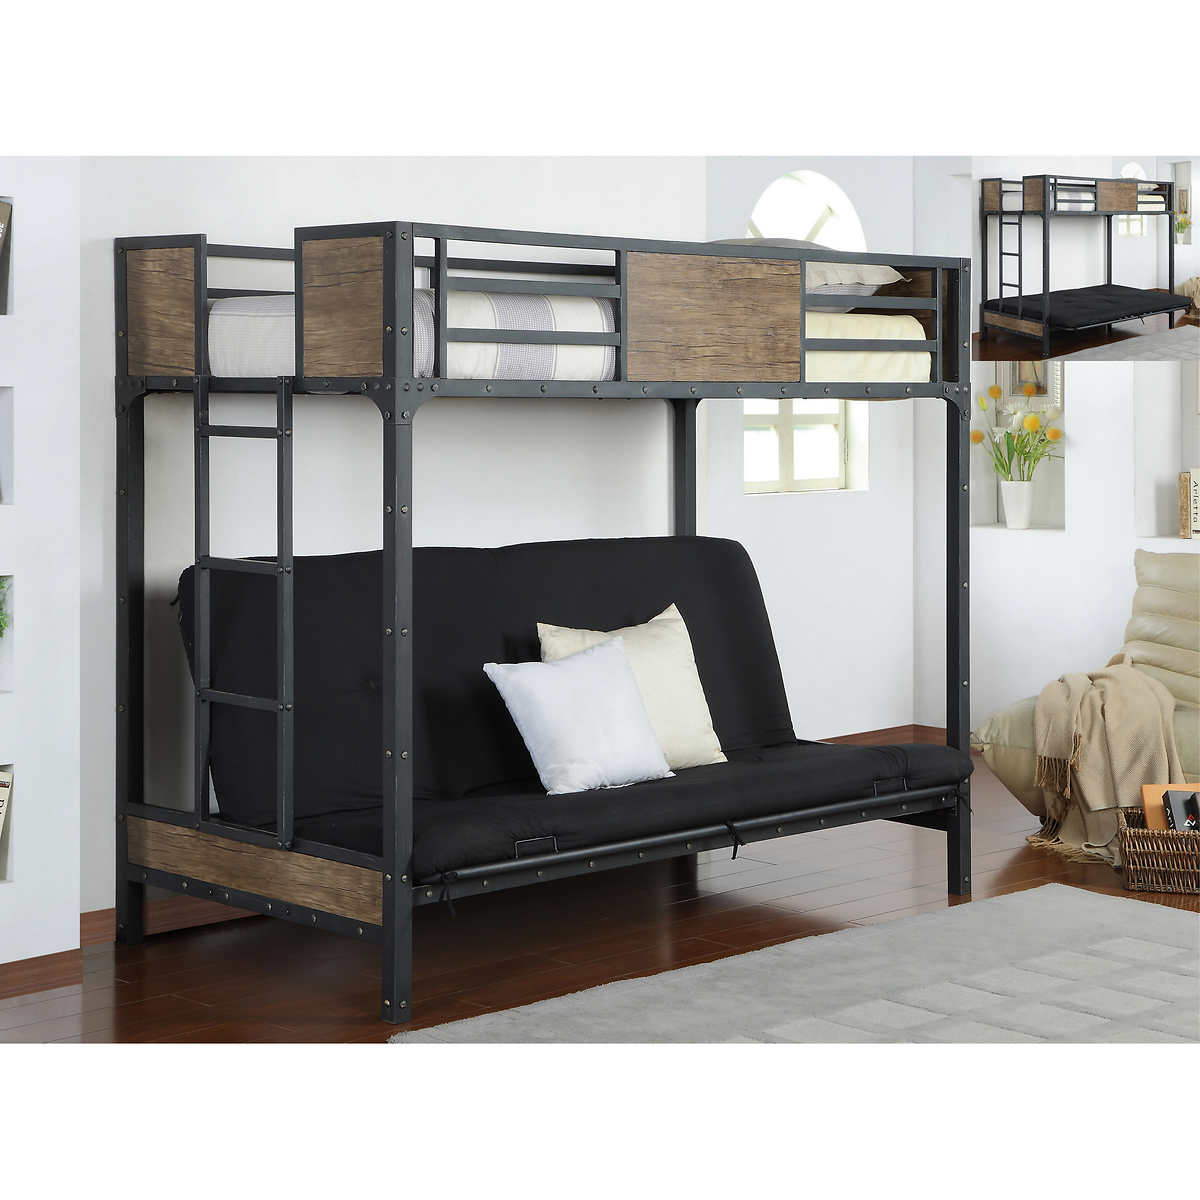 Bunk Bed Torbay Bunk Bed